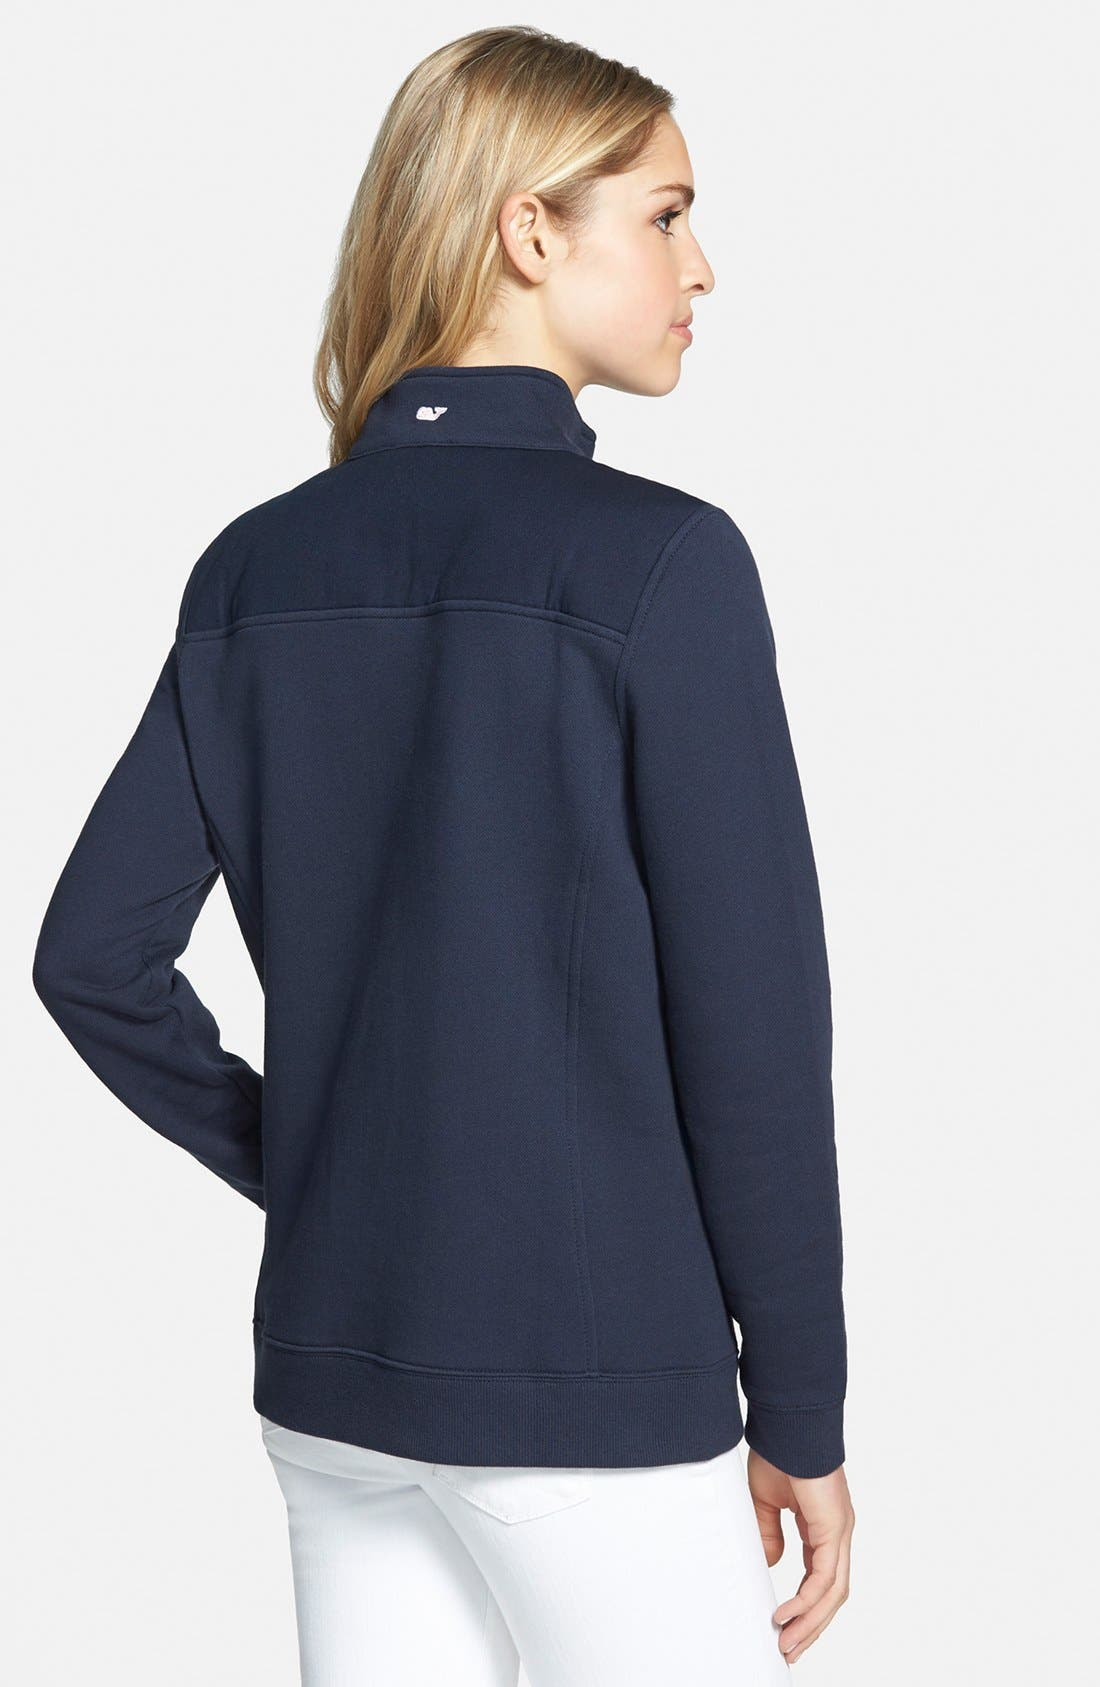 VINEYARD VINES,                             Shep Half Zip French Terry Pullover,                             Alternate thumbnail 8, color,                             400